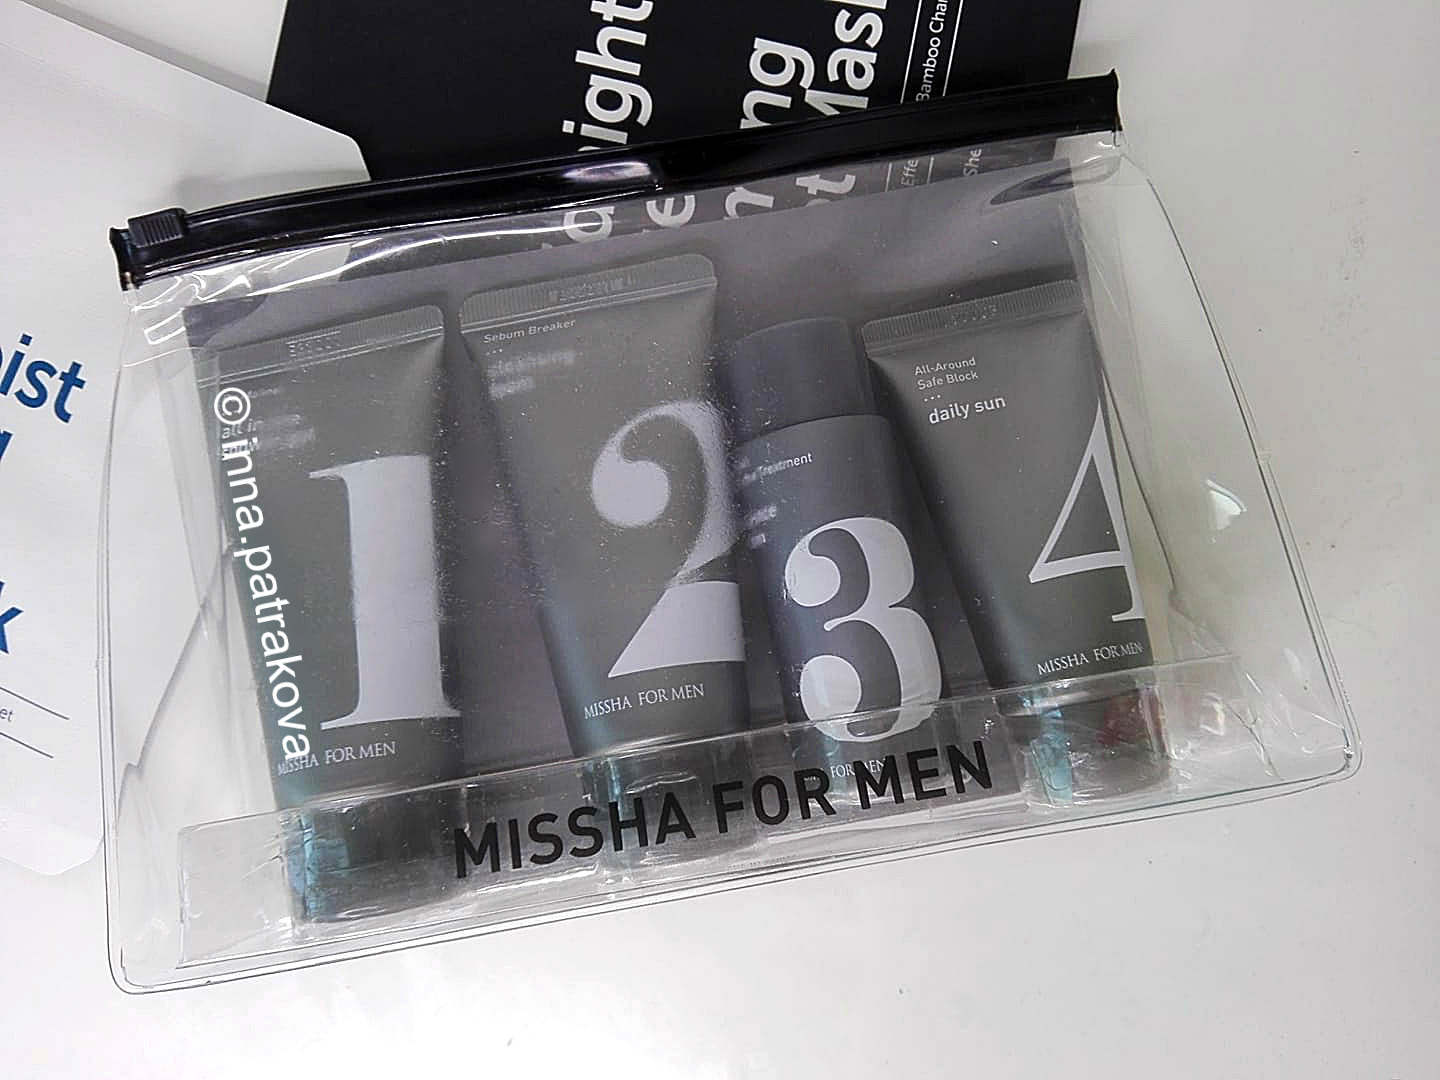 Missha For Men Travel Kit